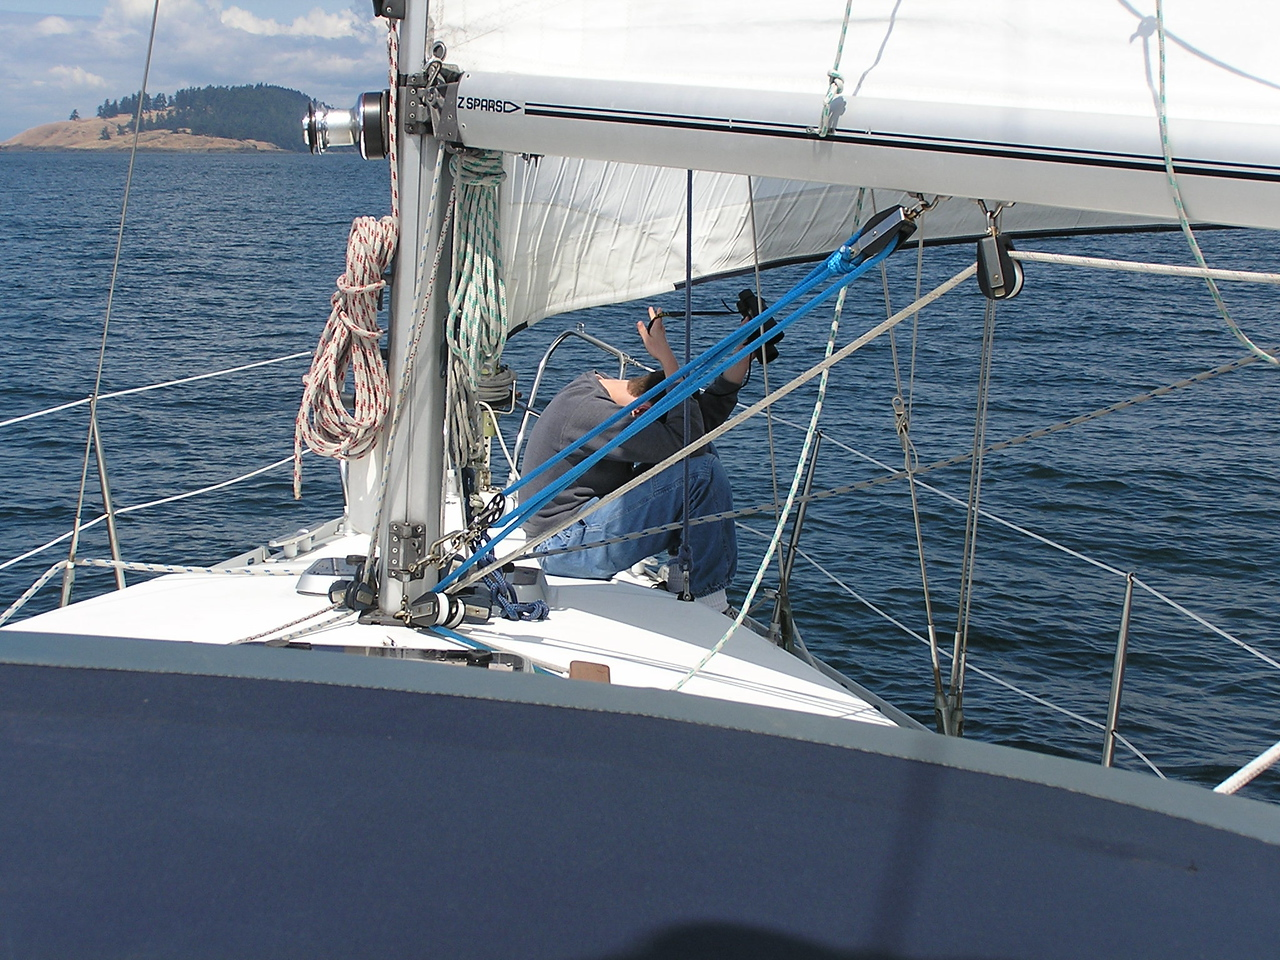 Day 2: Sailing from Deer Harbor to Browning Harbour on Pender Island in Canada